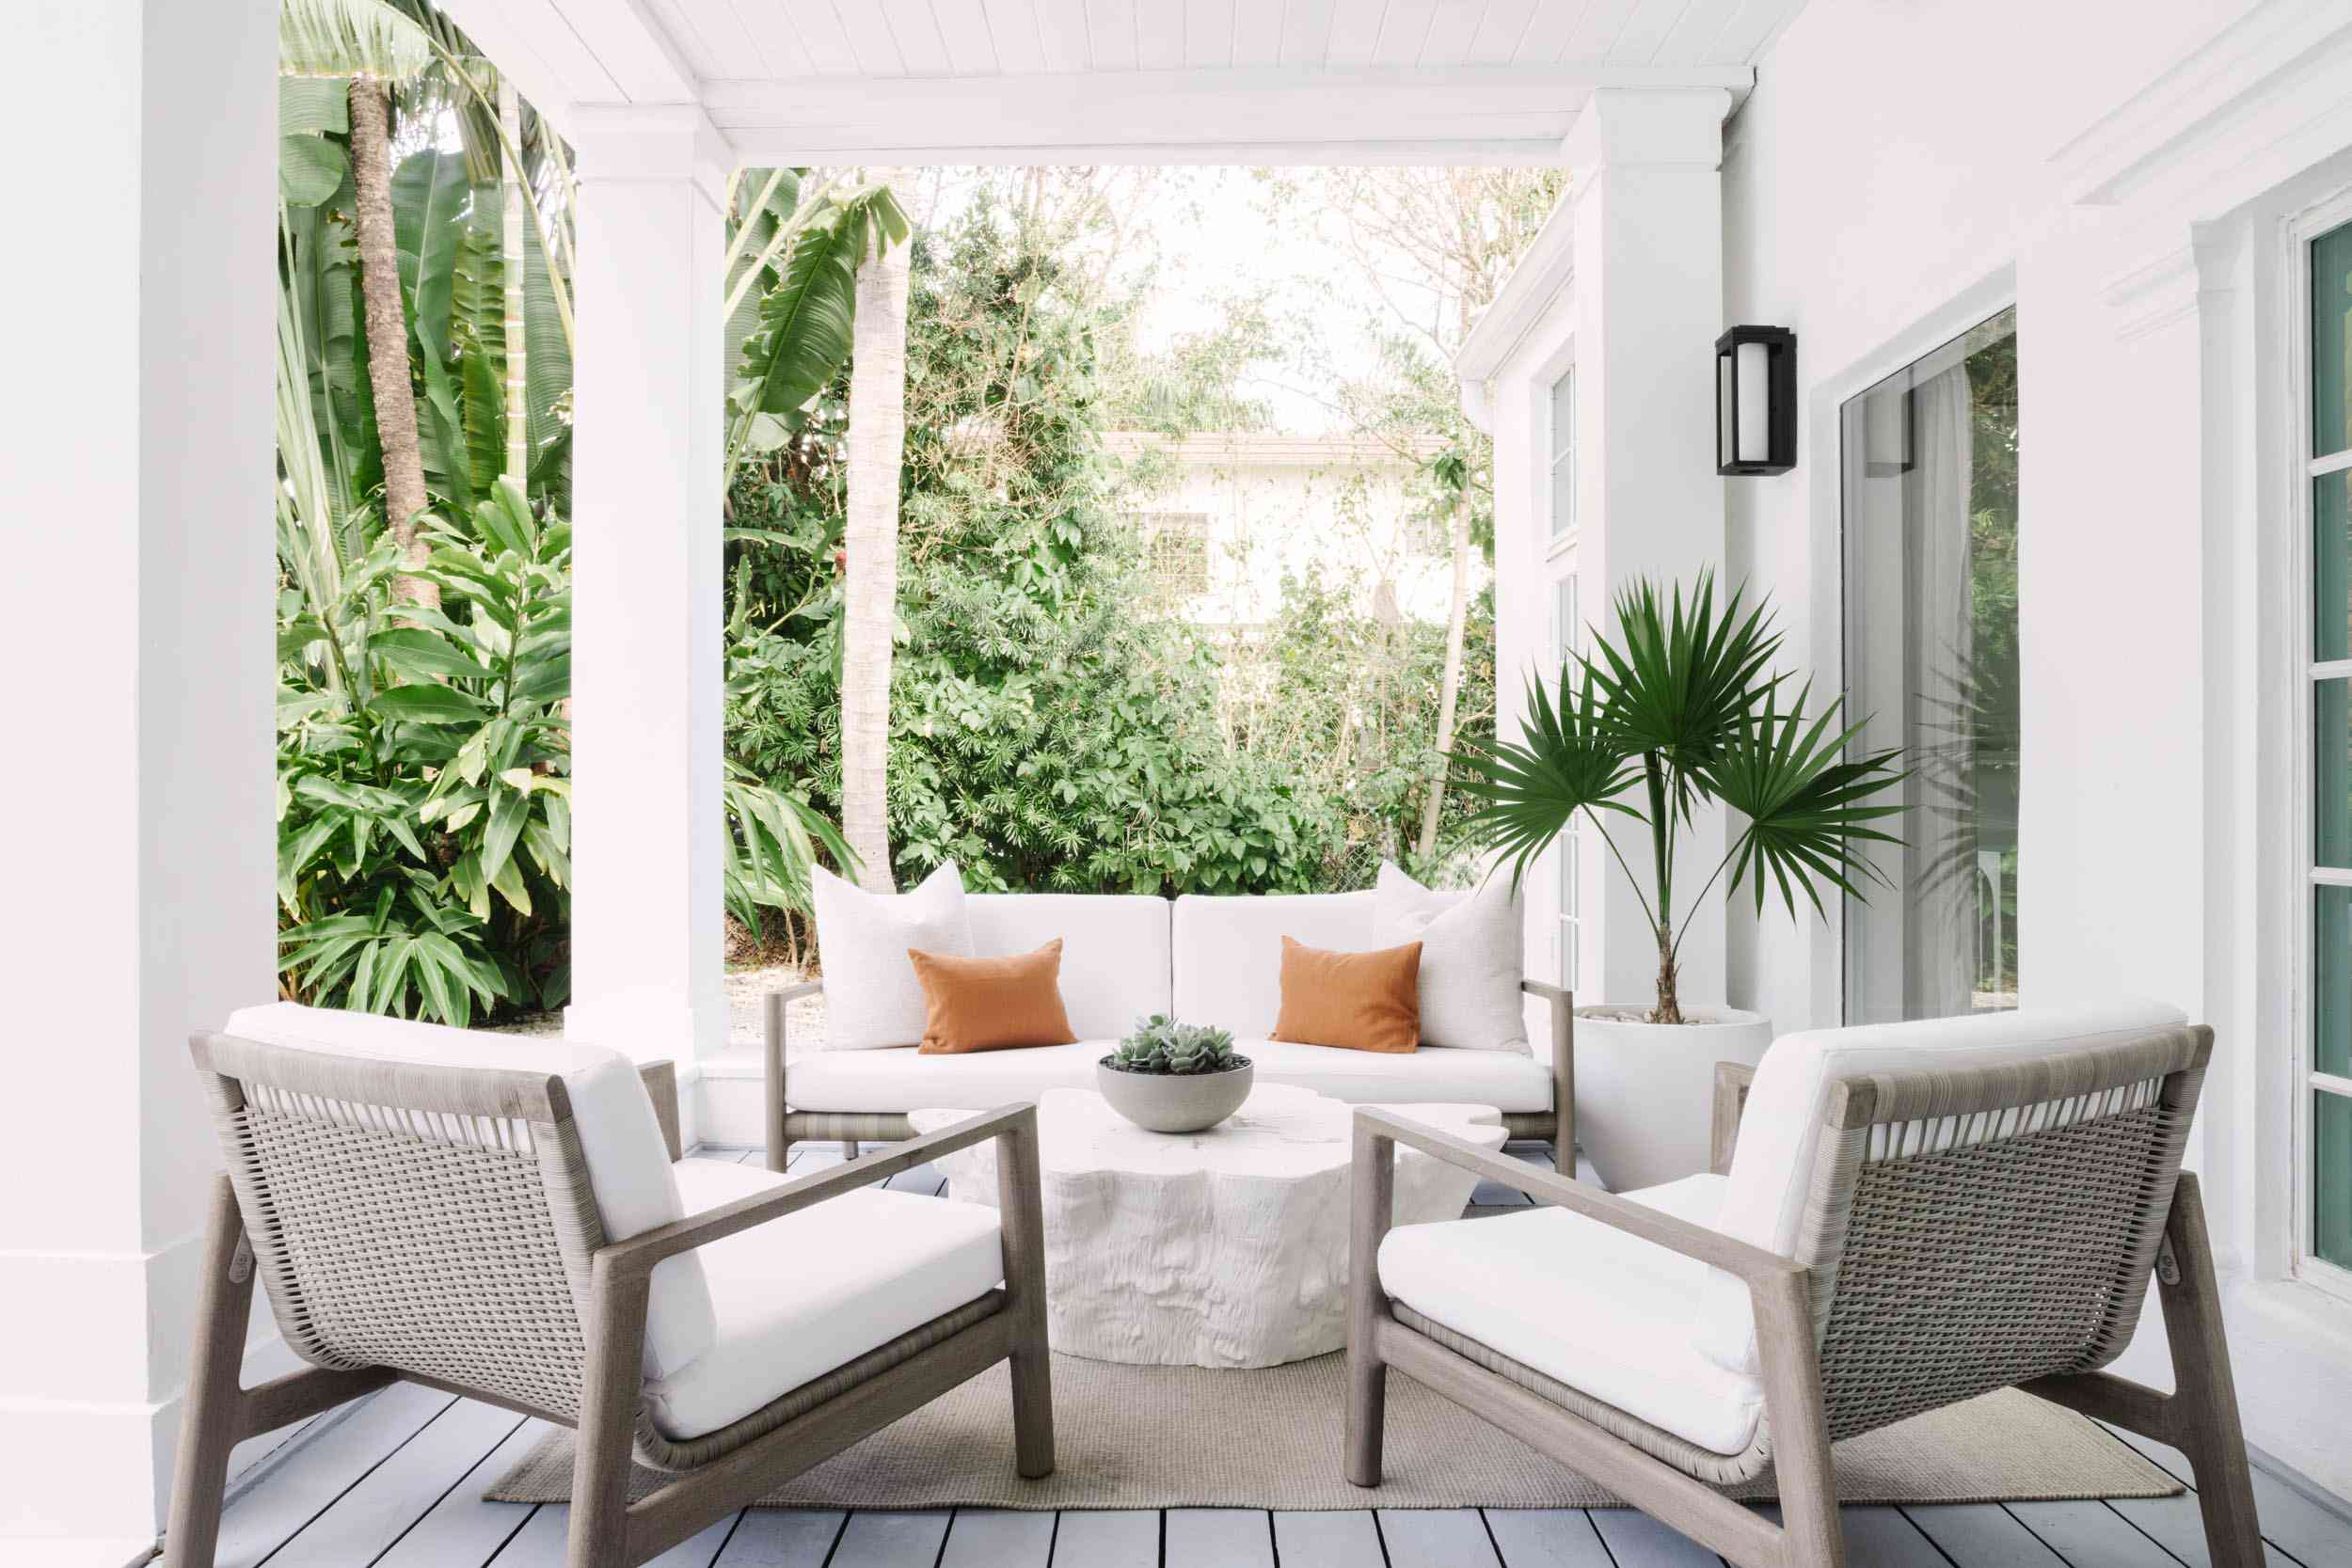 Outdoor lounge space with white sofa and chairs.